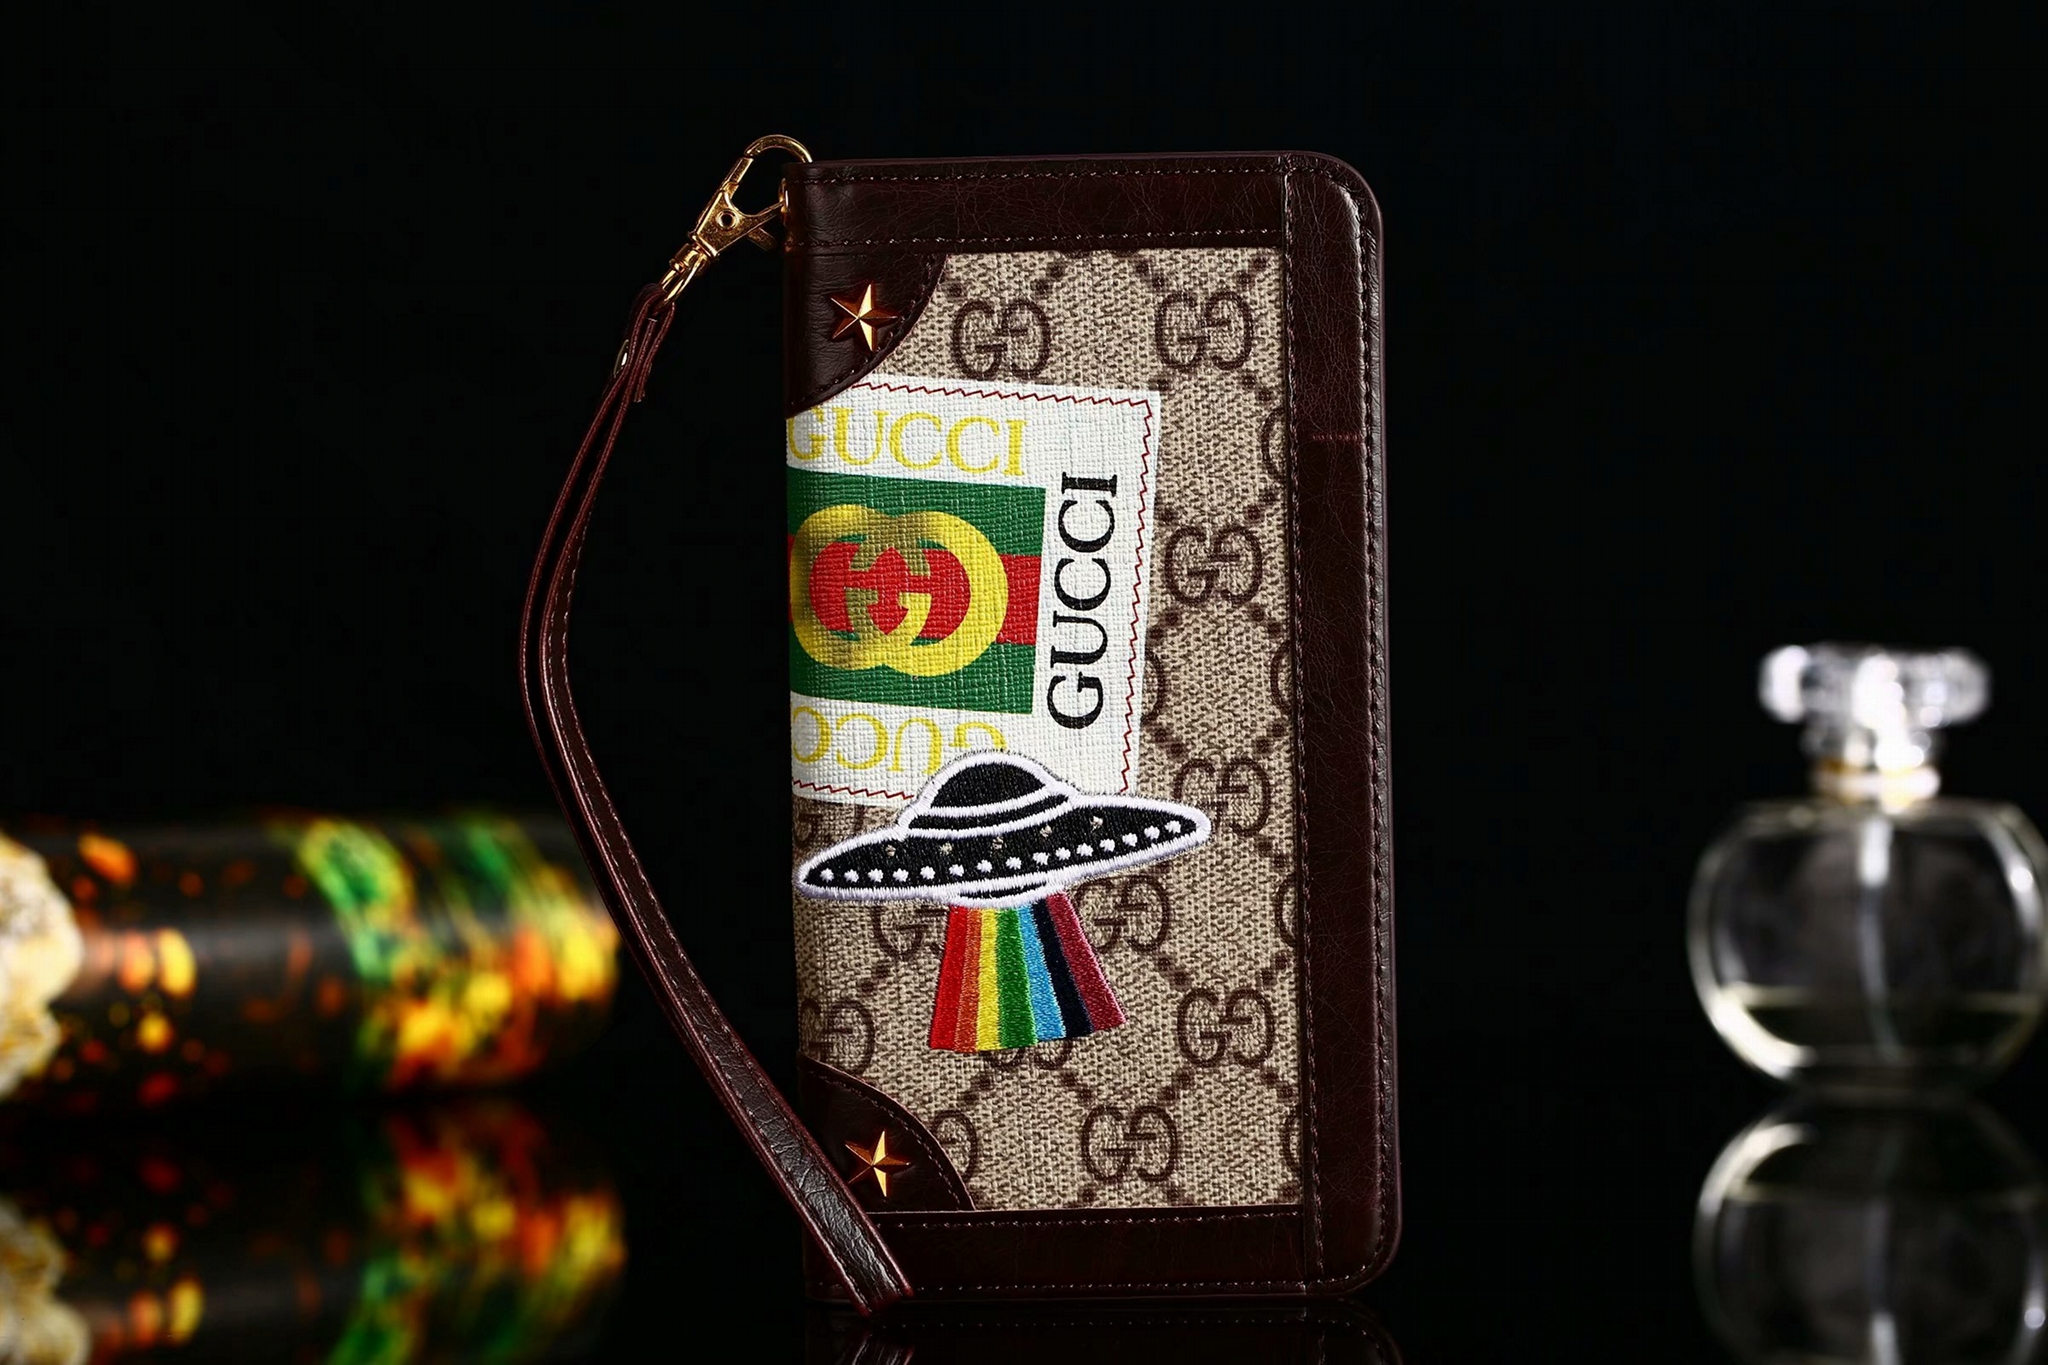 42fc78dd2 XR XS MAX Gucci embroidery flying saucer wrist strap cardslot wallet